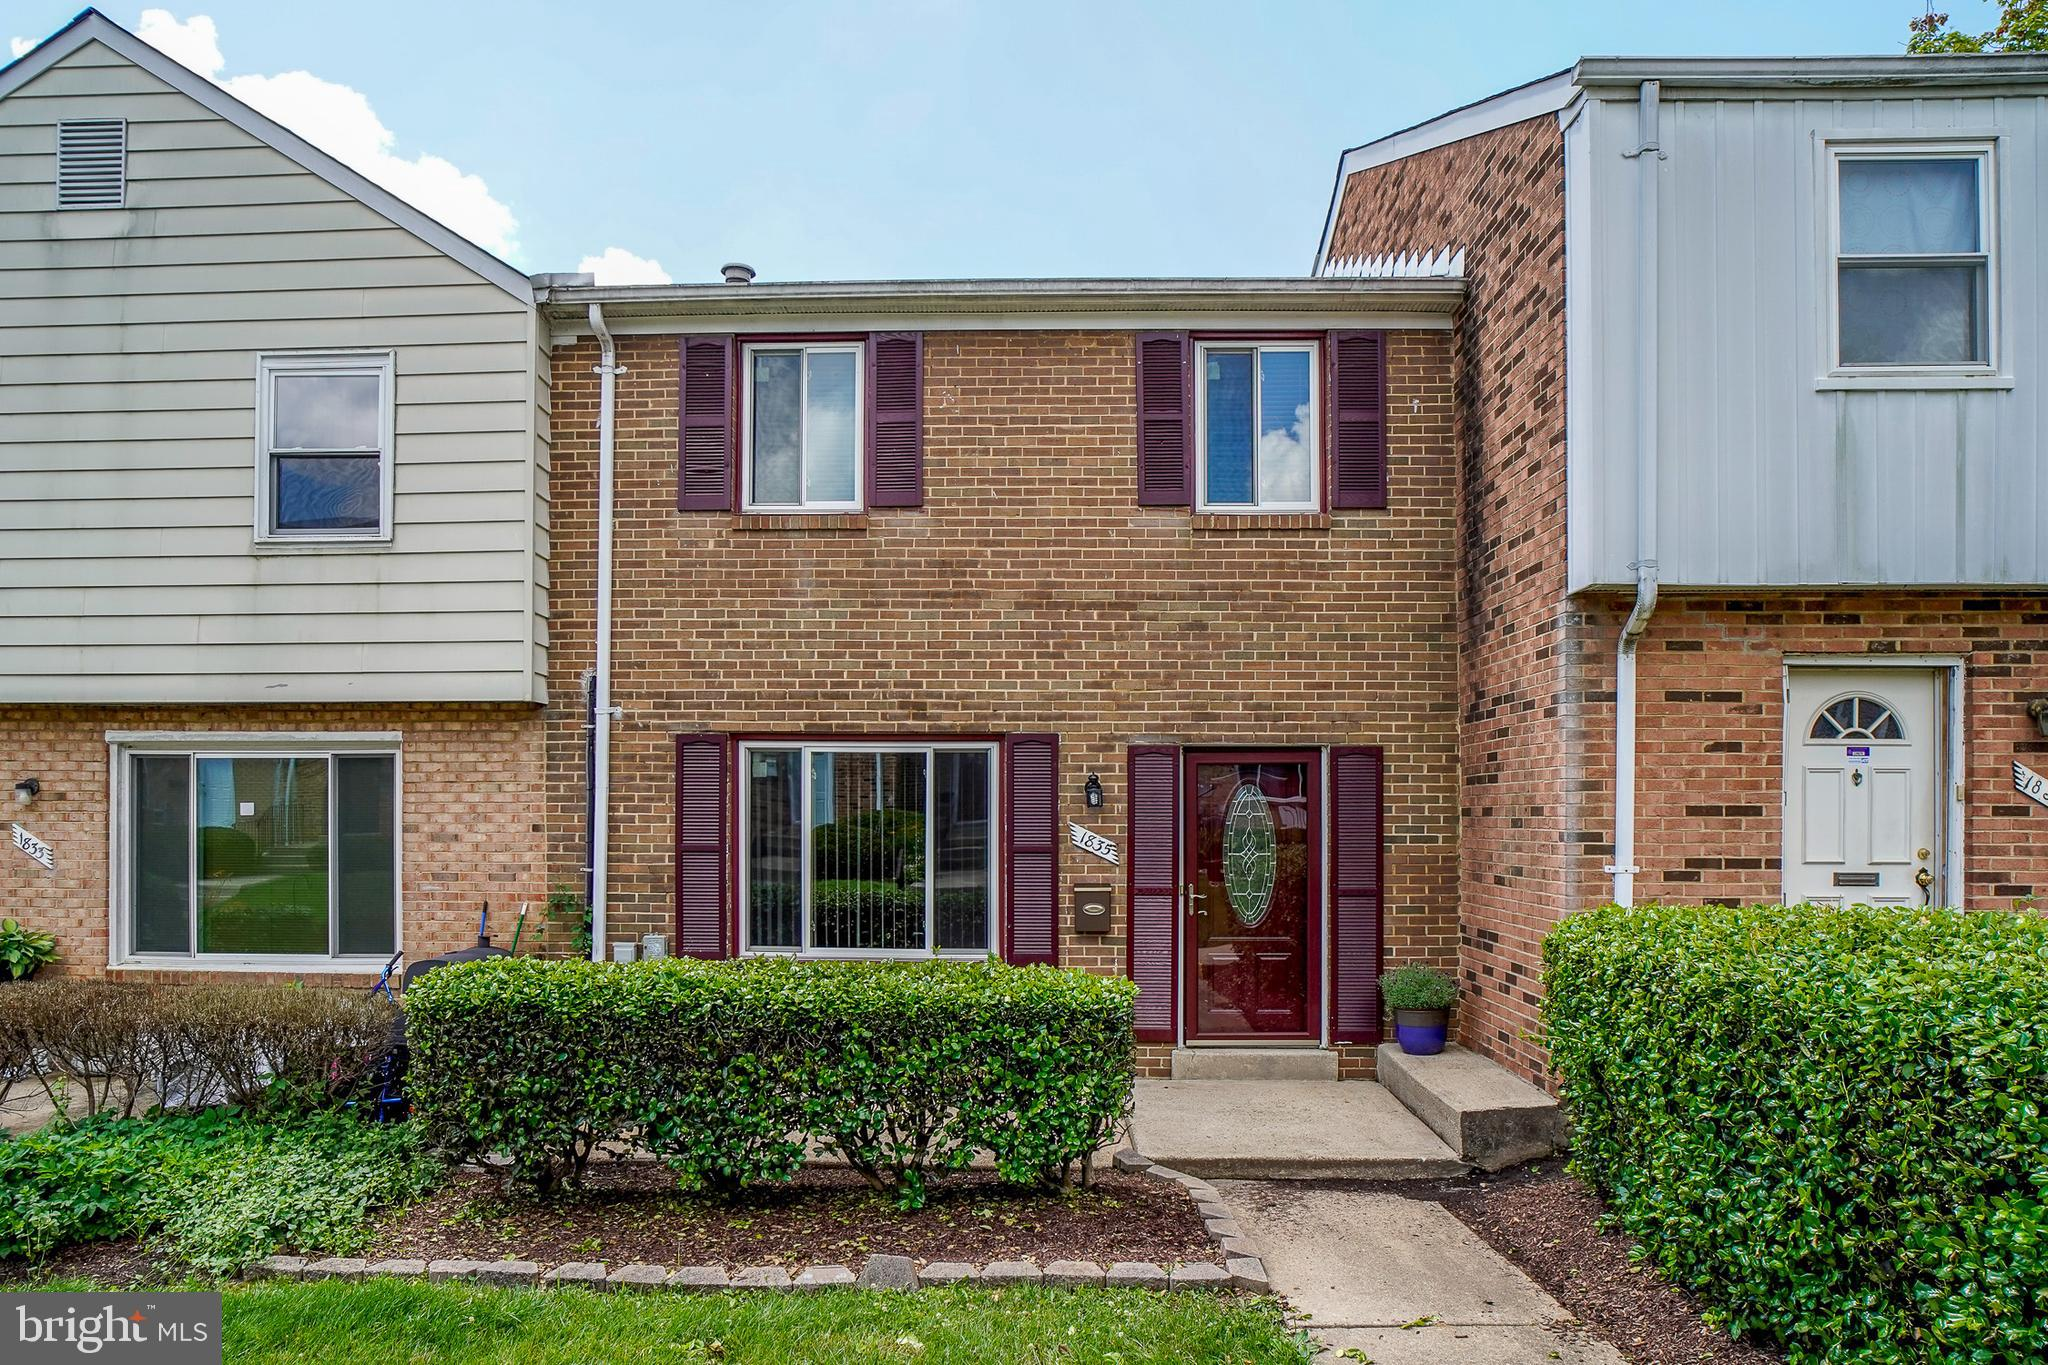 1835 Addison Rd S, District Heights, MD, 20747